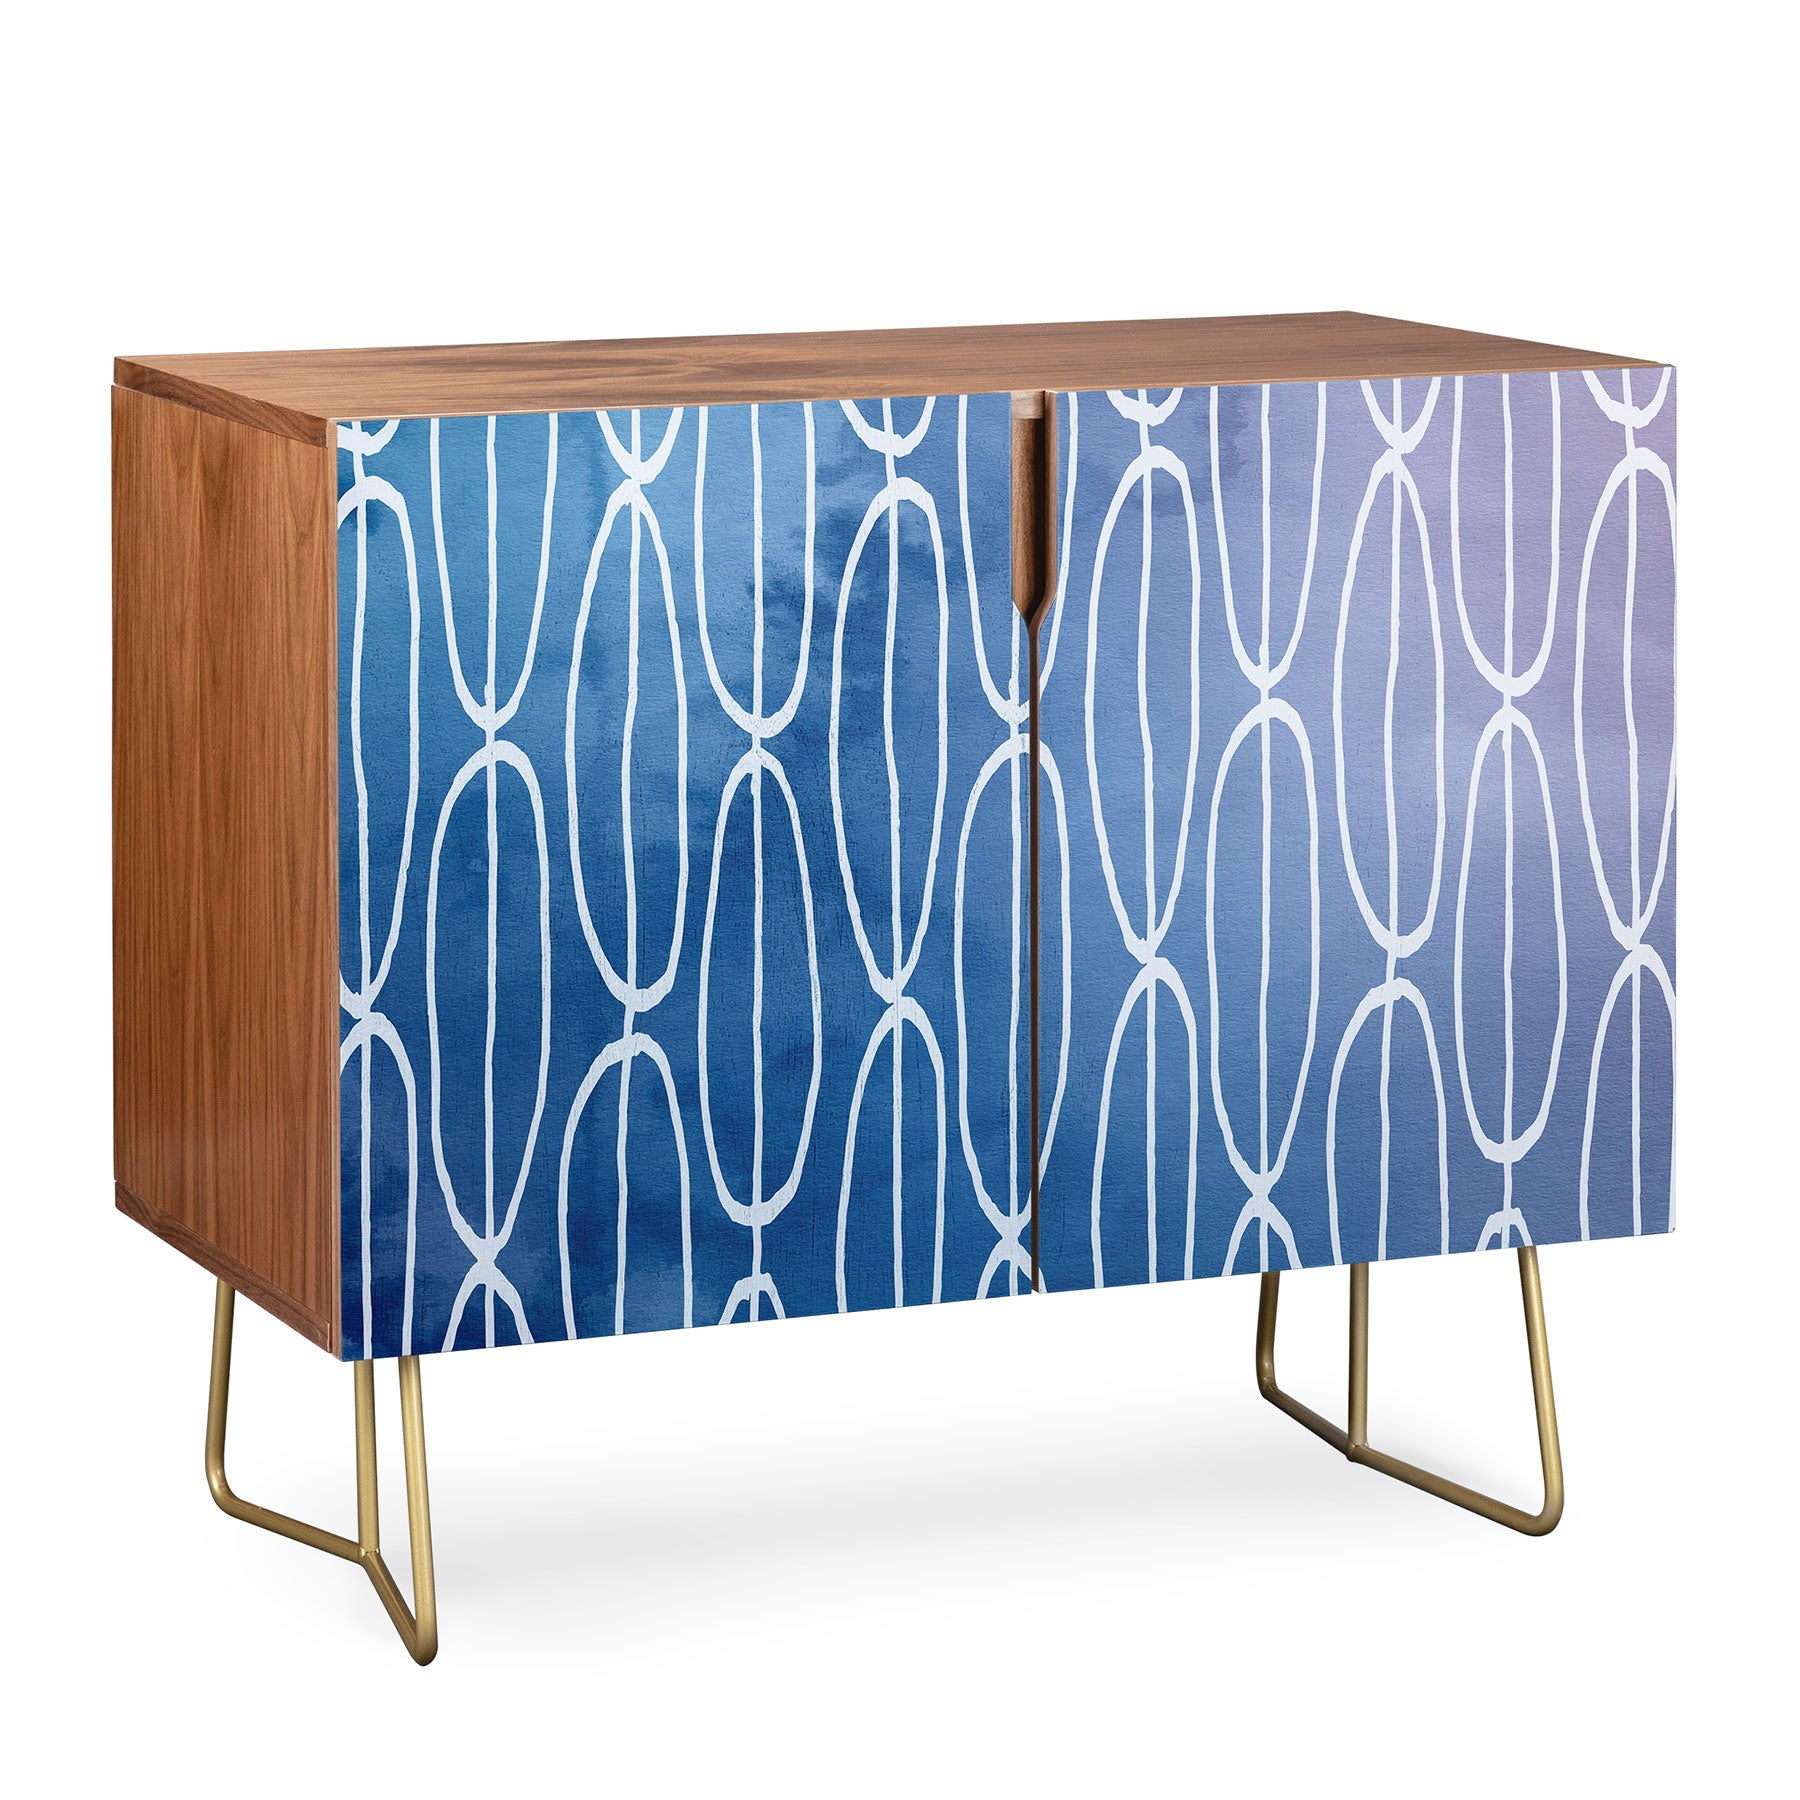 Lara Kulpa Abstract Sounds Credenza